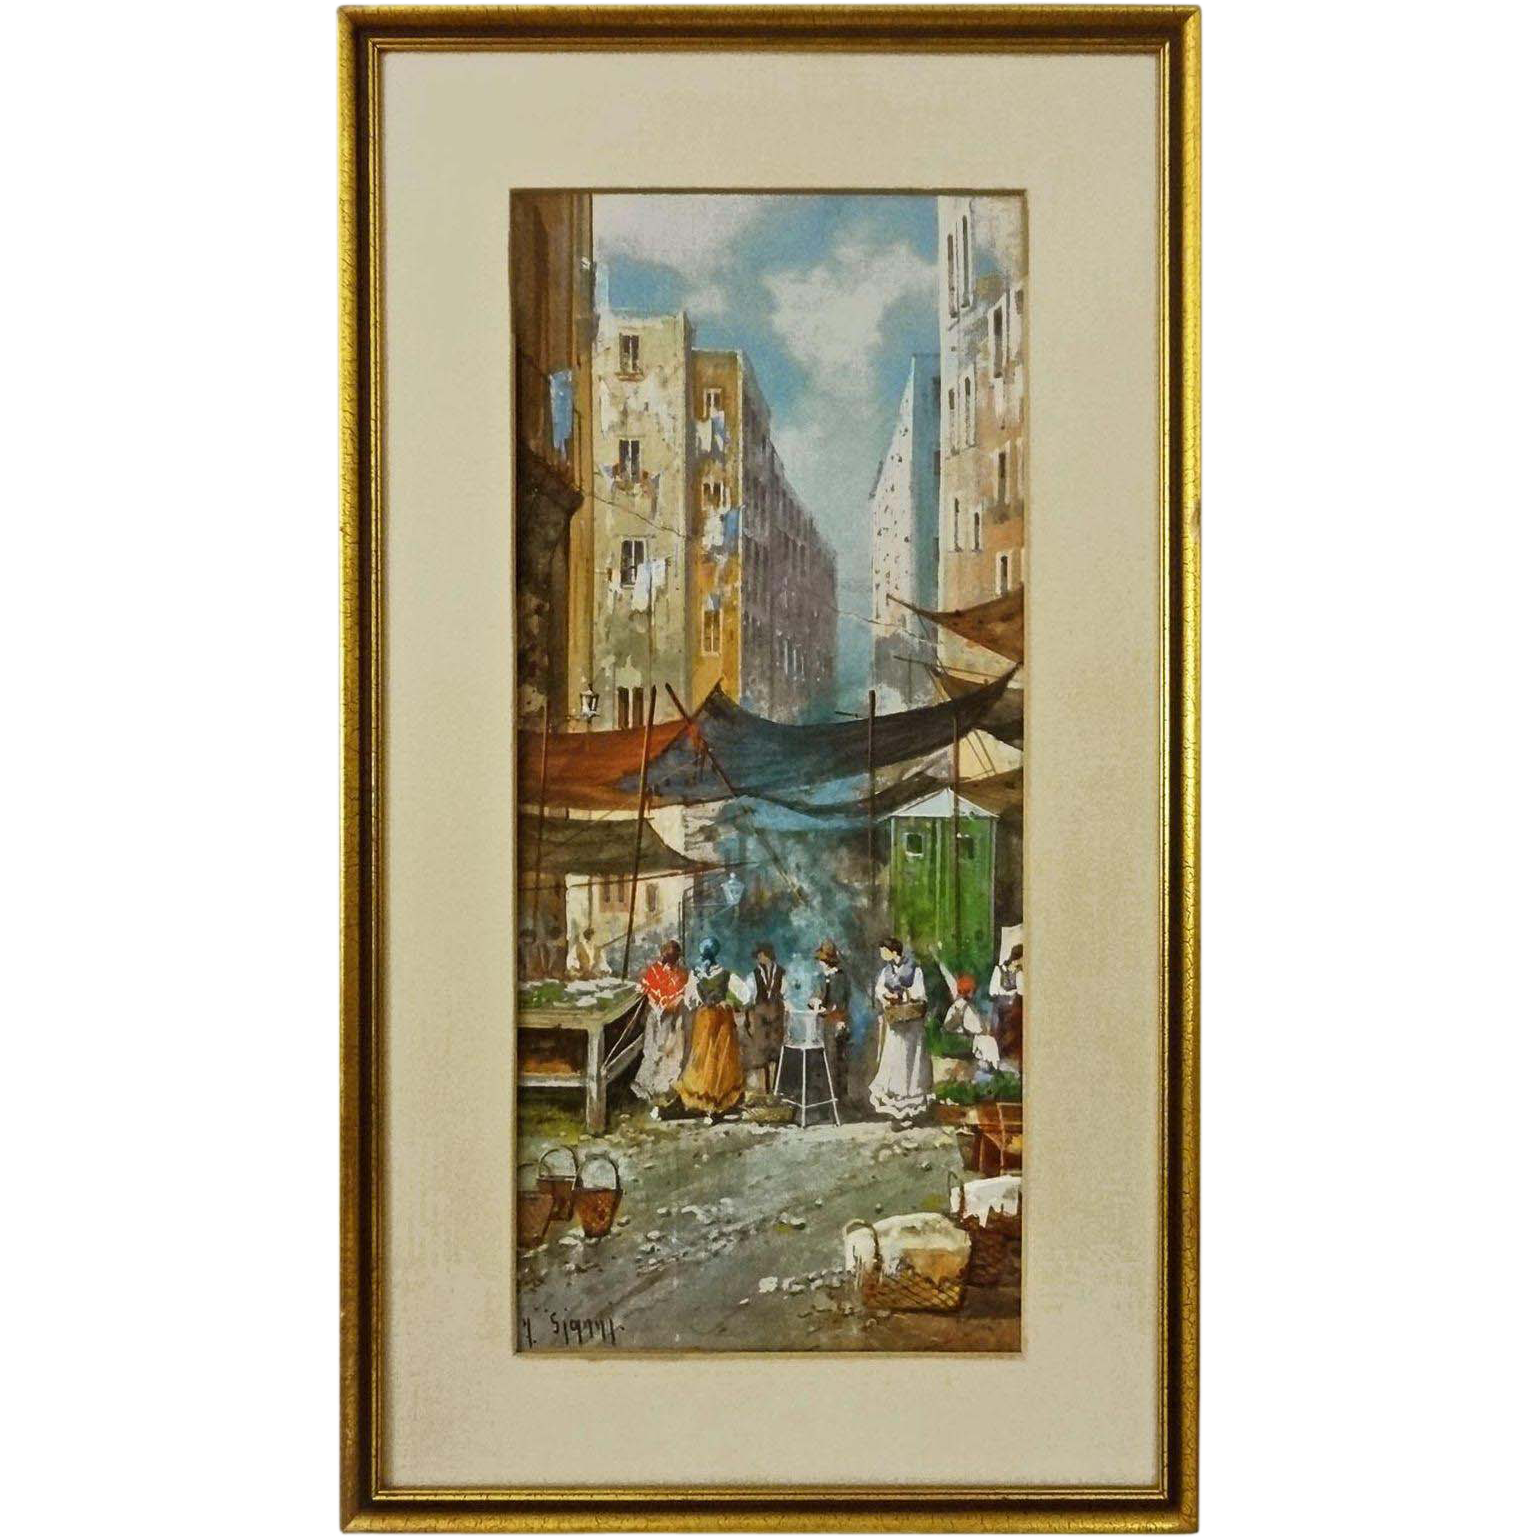 Neapolitan Market Street Scene Gouache Watercolor Painting Signed Y. Gianni - early 20th Century, Italy